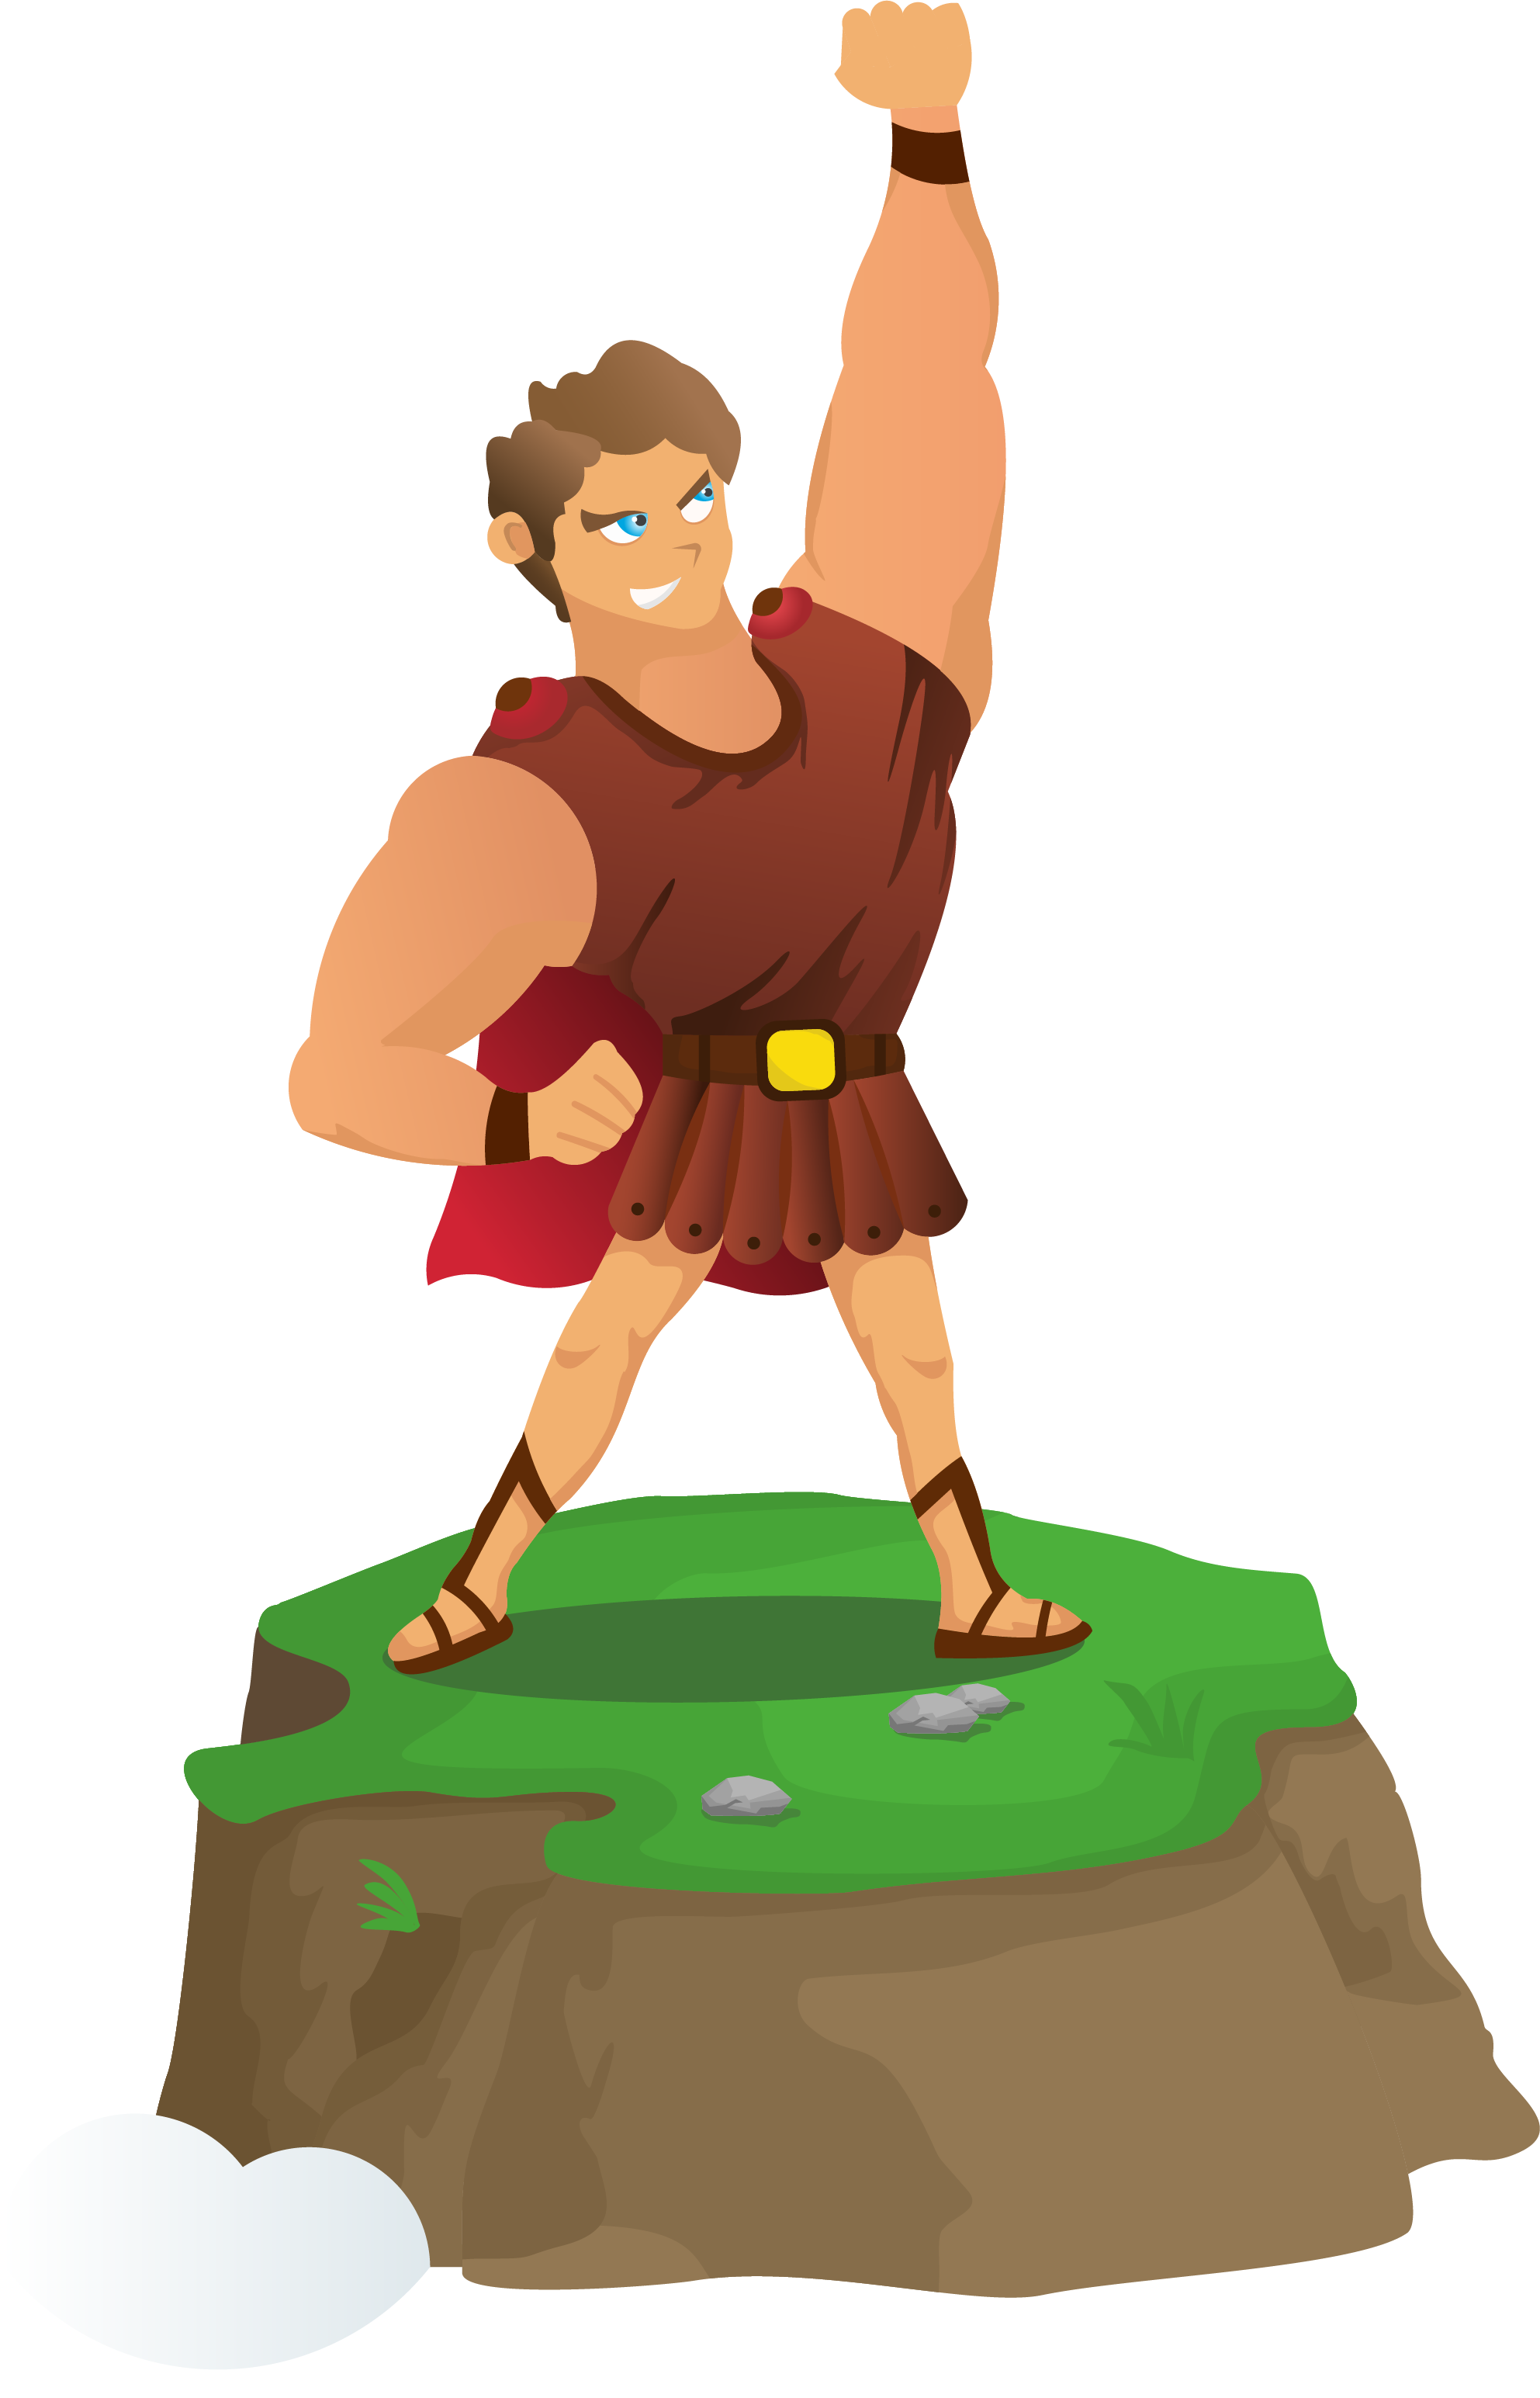 Wrestlers clipart animated. Hercules png images who